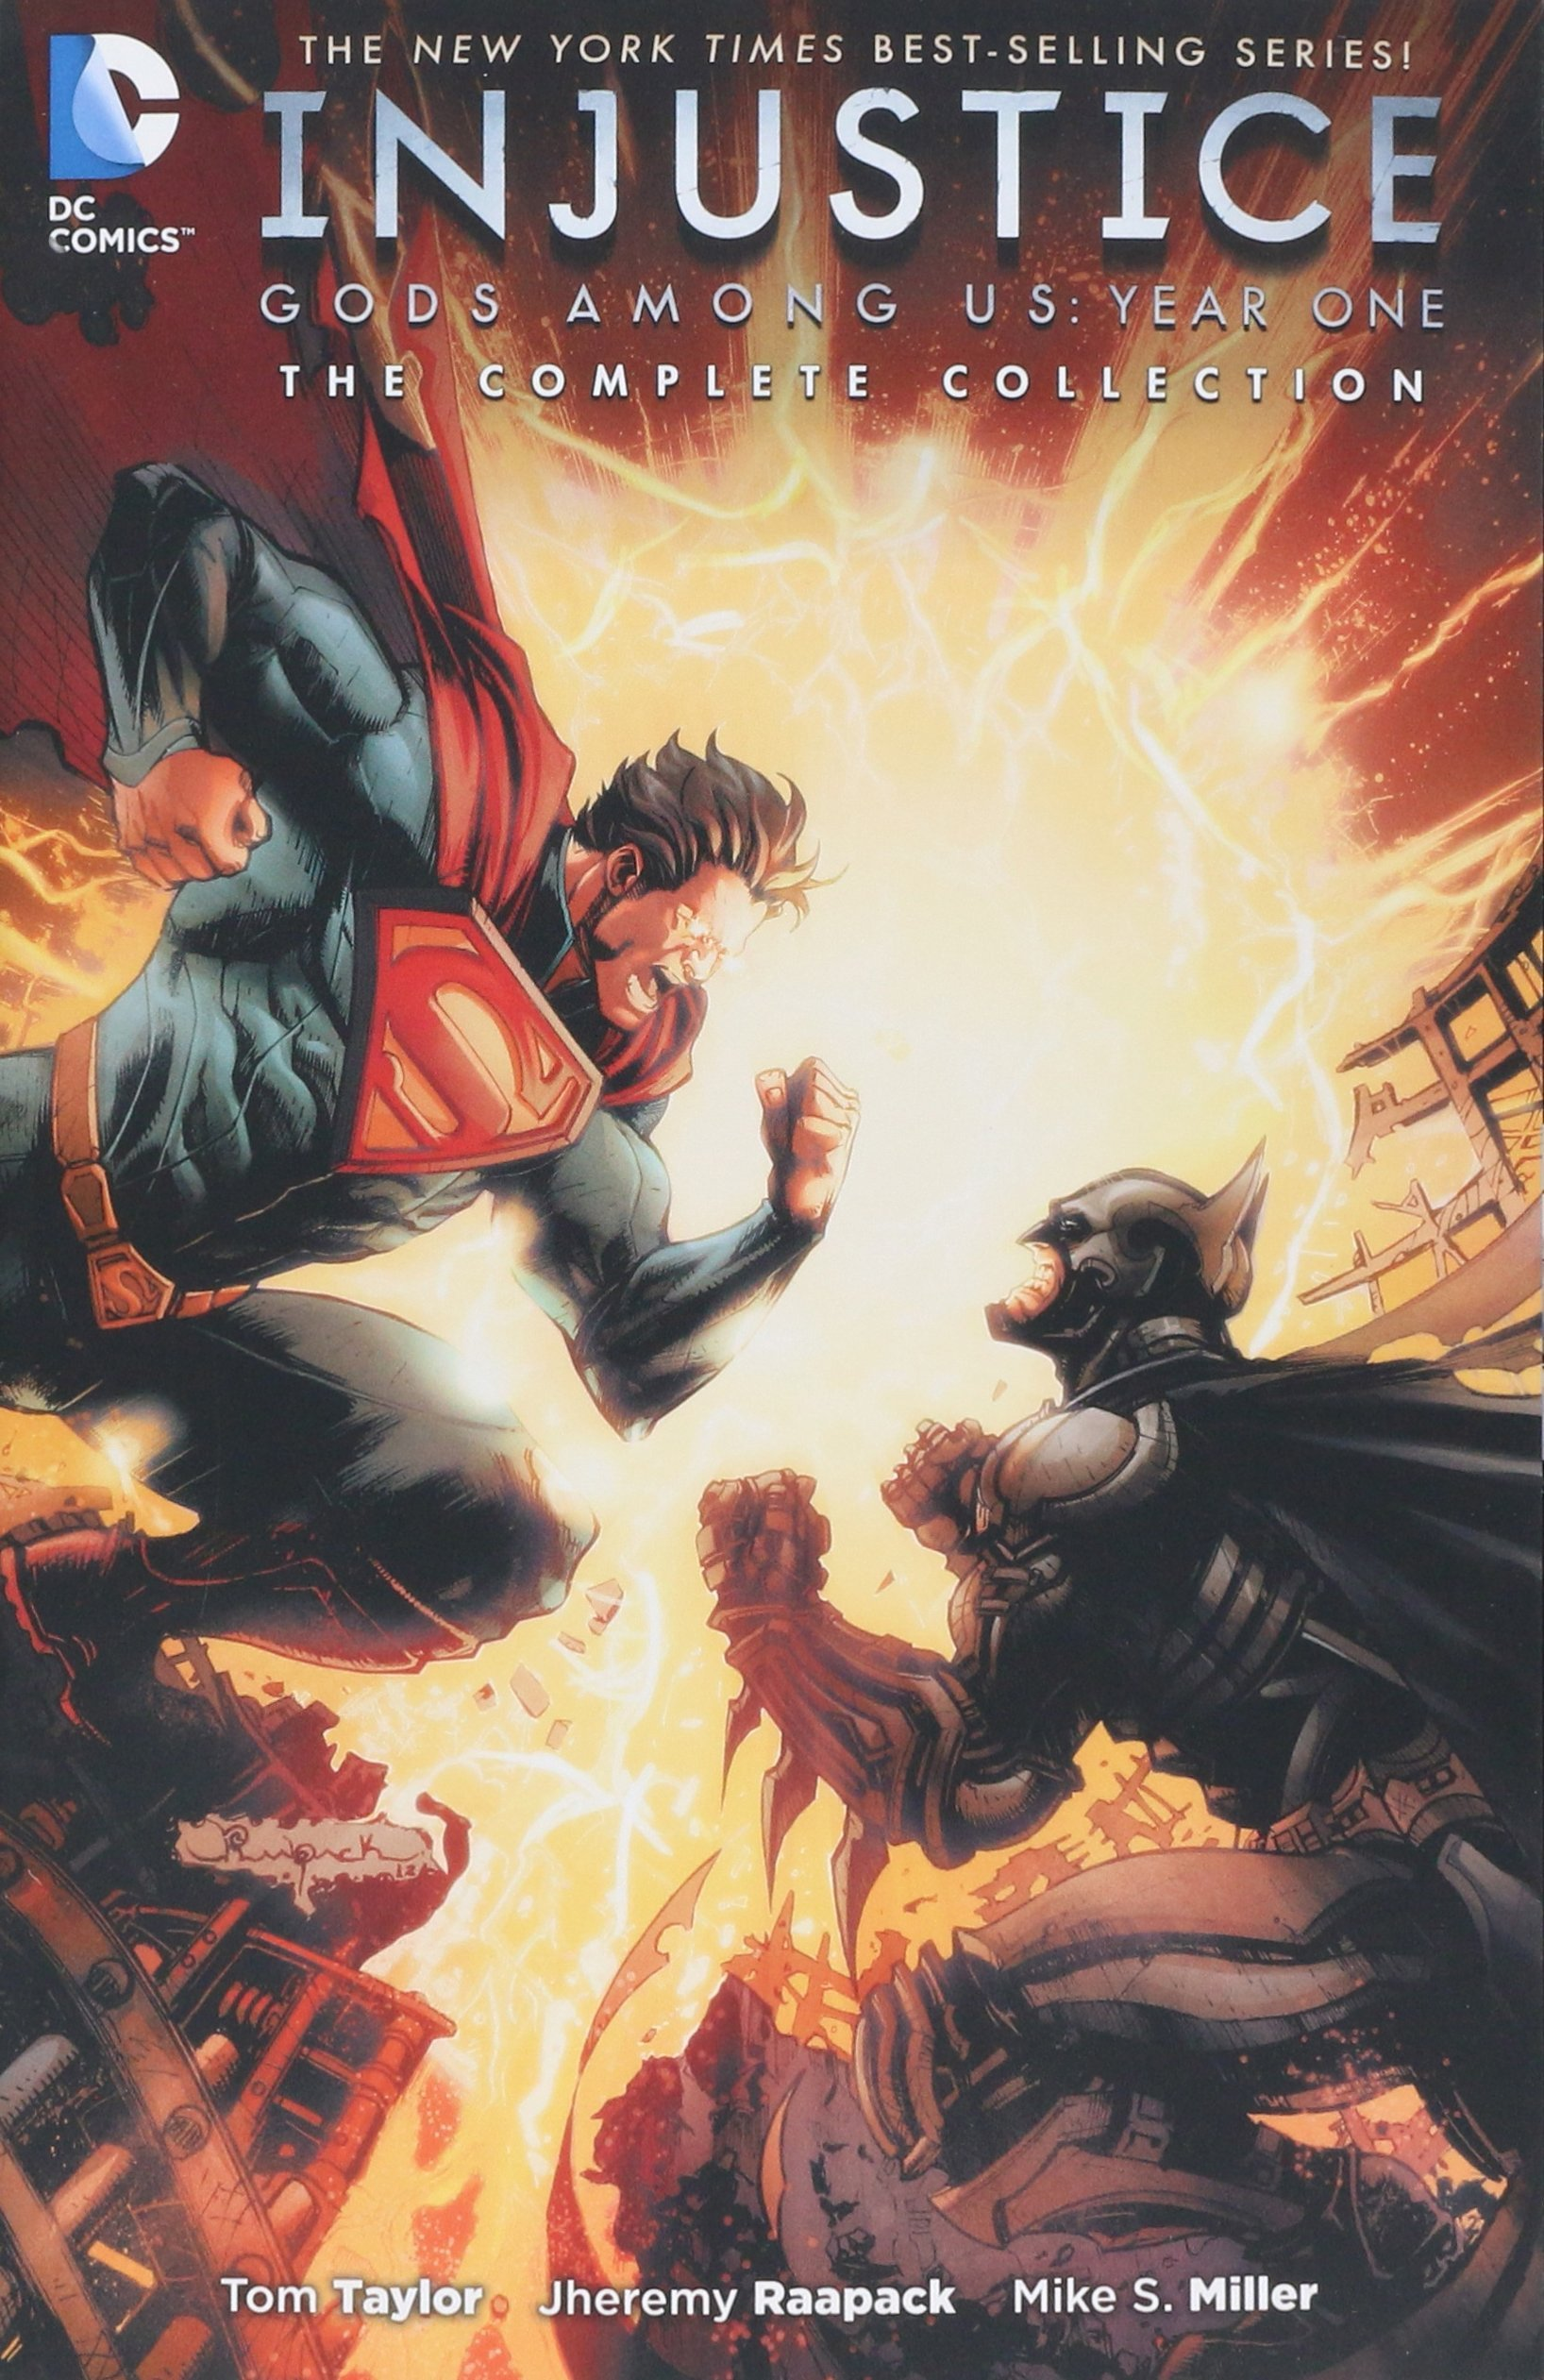 Image result for injustice comics